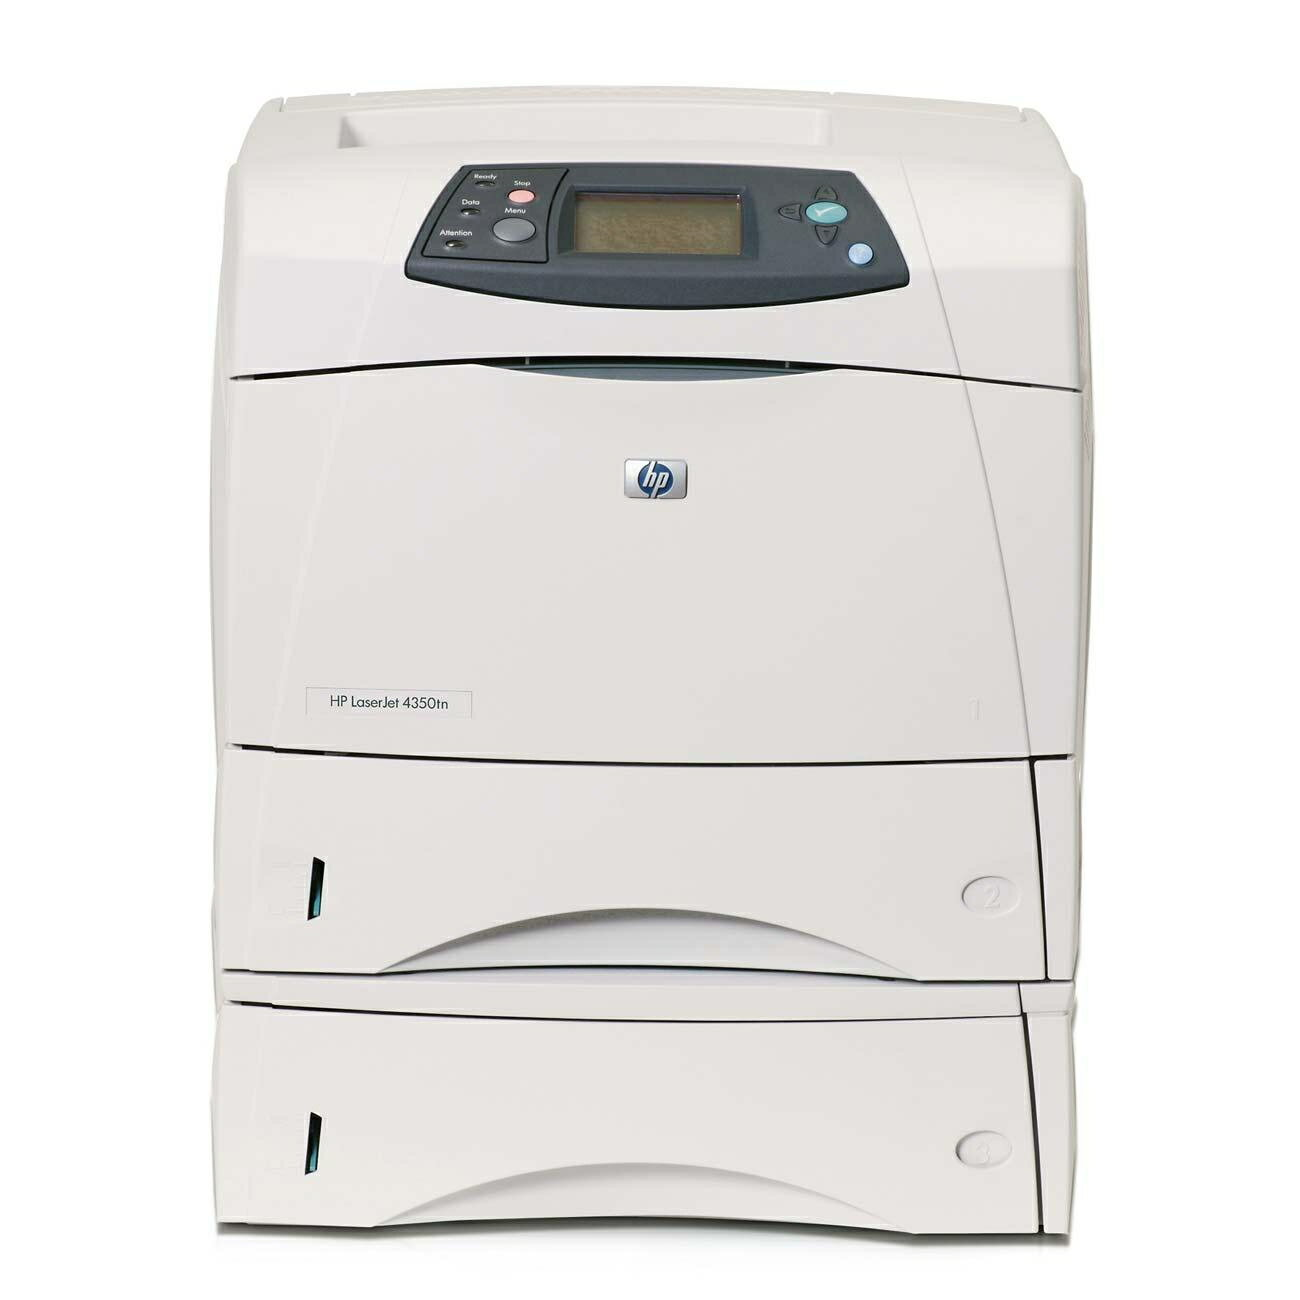 HP LaserJet 4350TN Laser Printer - Monochrome - 1200 x 1200 dpi Print - Plain Paper Print - Desktop - 55 ppm Mono Print - Letter, Legal, Executive, Statement, Envelope No. 10, Monarch Envelope, Custom Size - 1100 sheets Standard Input Capacity - 250000 Du 0